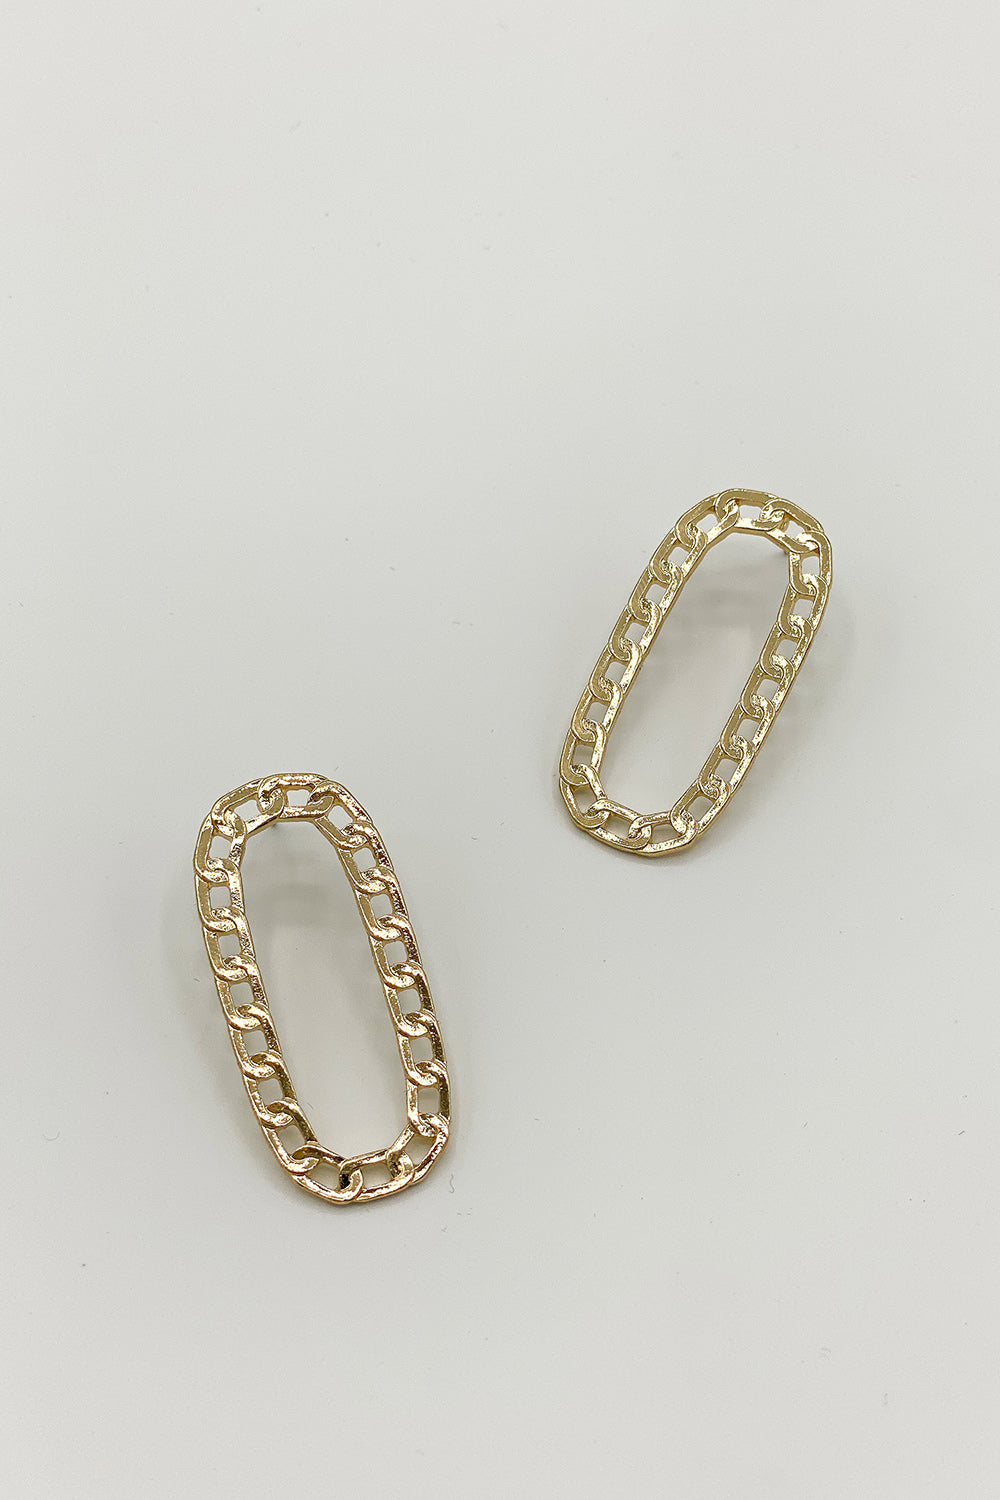 Off The Chain Gold Earrings